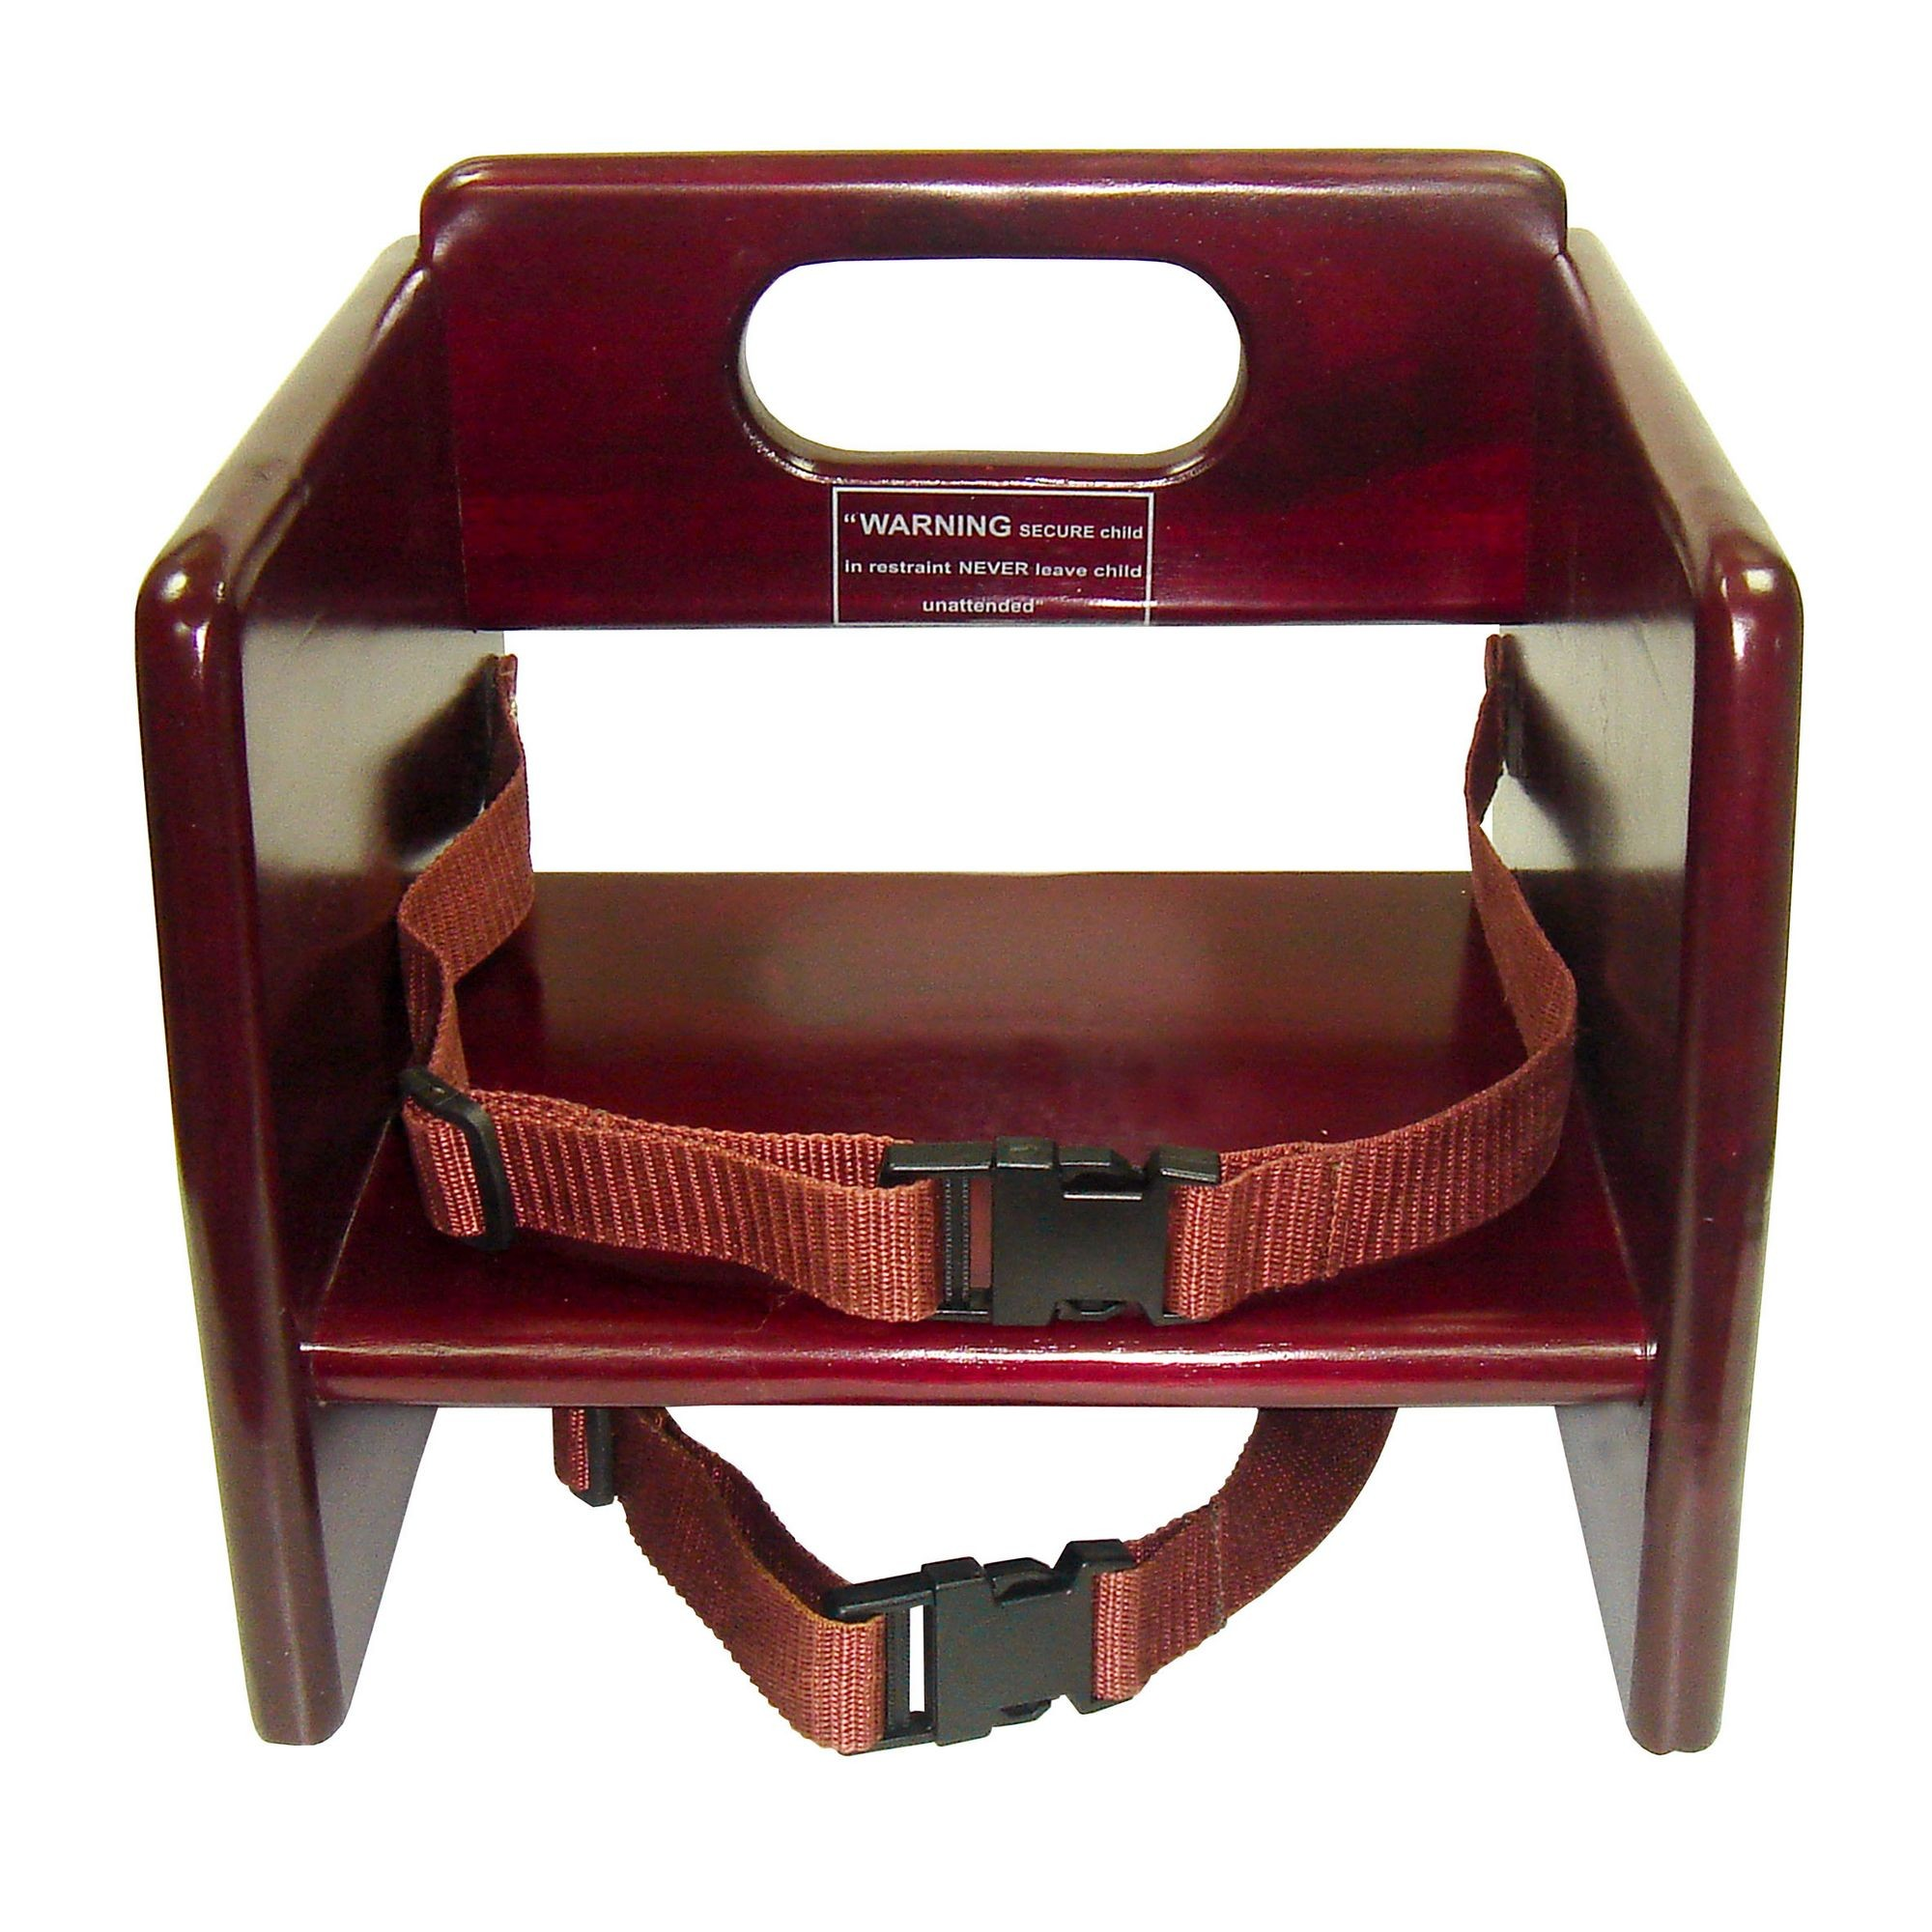 Winco CHB-703 Mahogany Wood Booster Seat